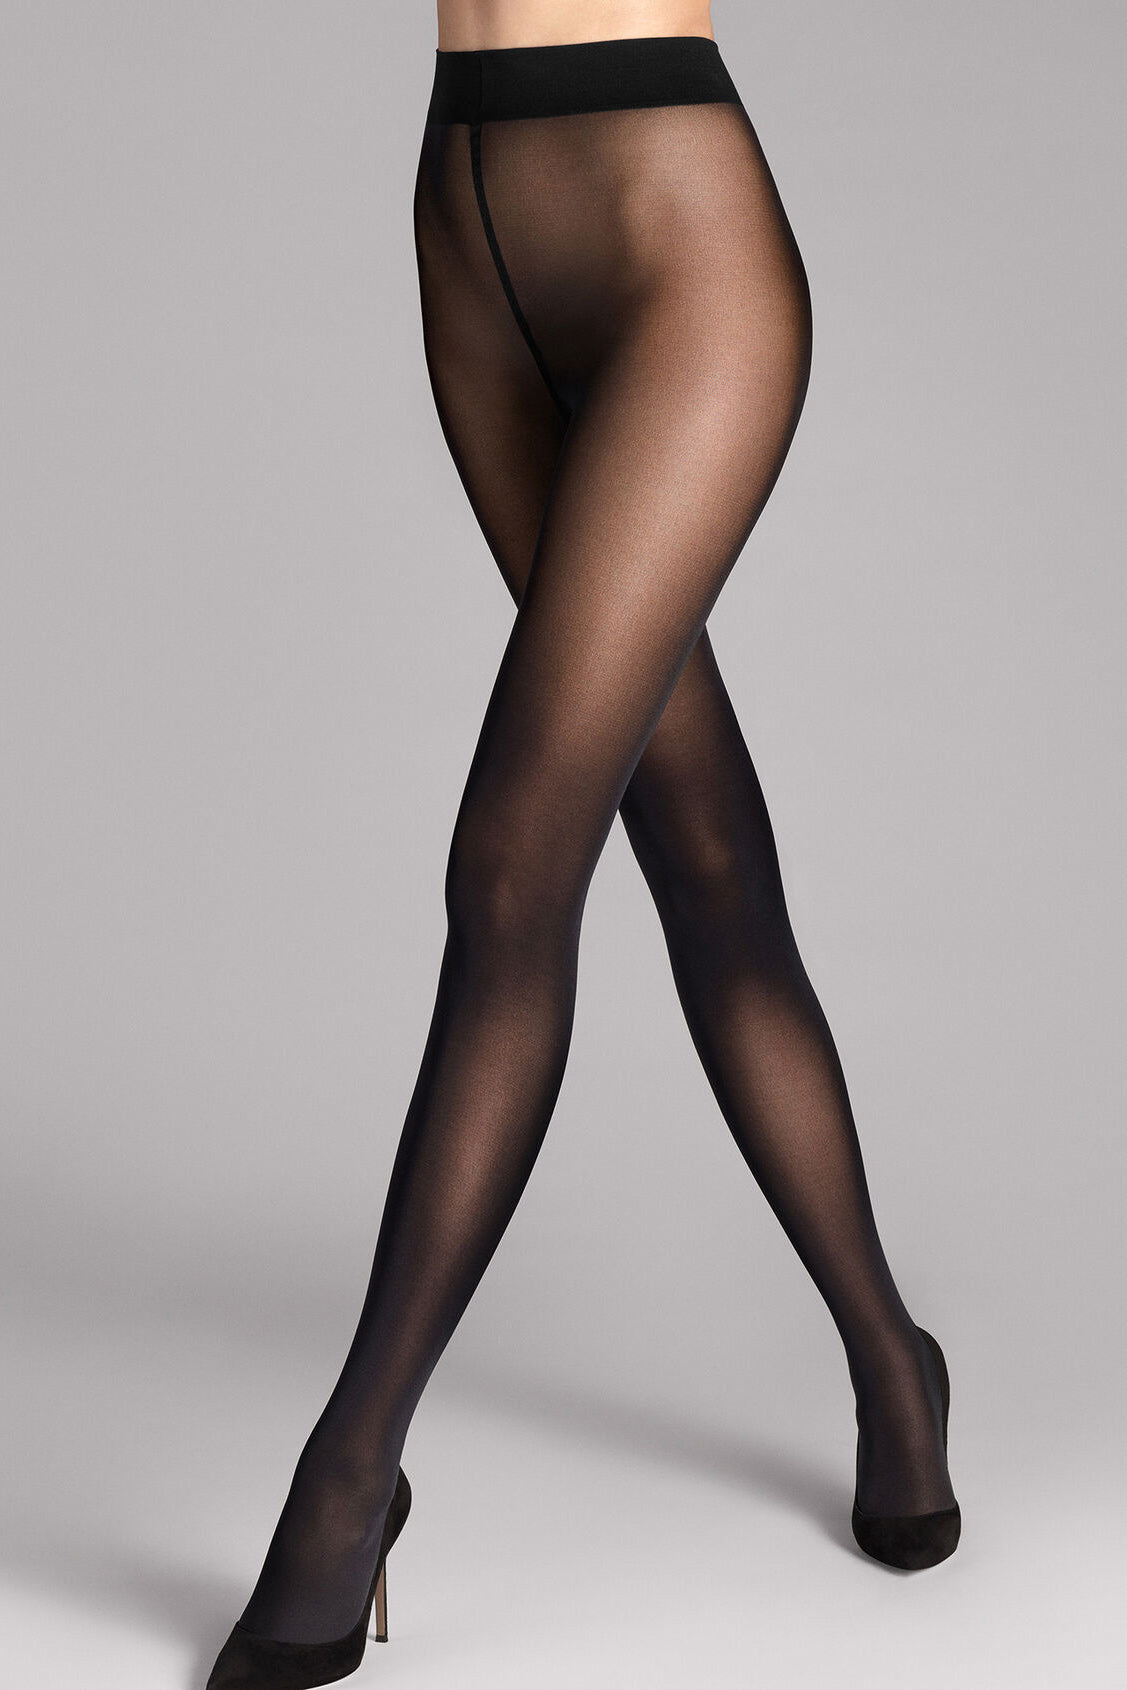 Wolford Pure 50 Opaque Tights in Black - Vert & Vogue